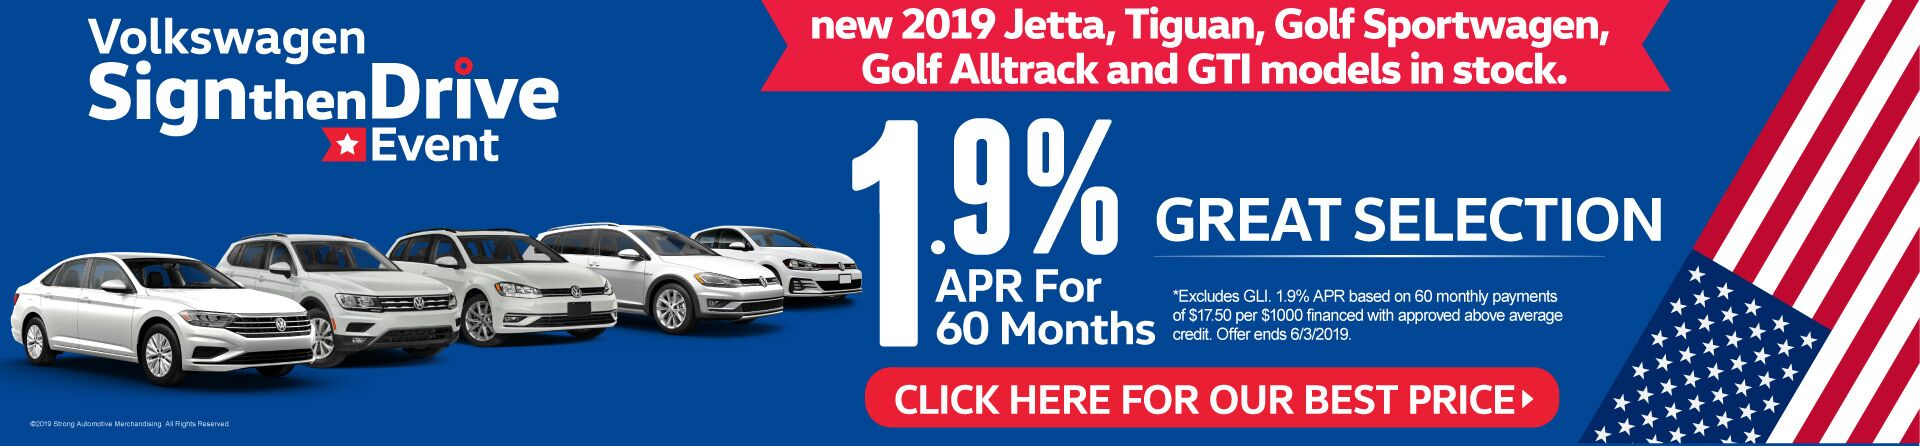 Sign Then Drive Event 1.9% APR